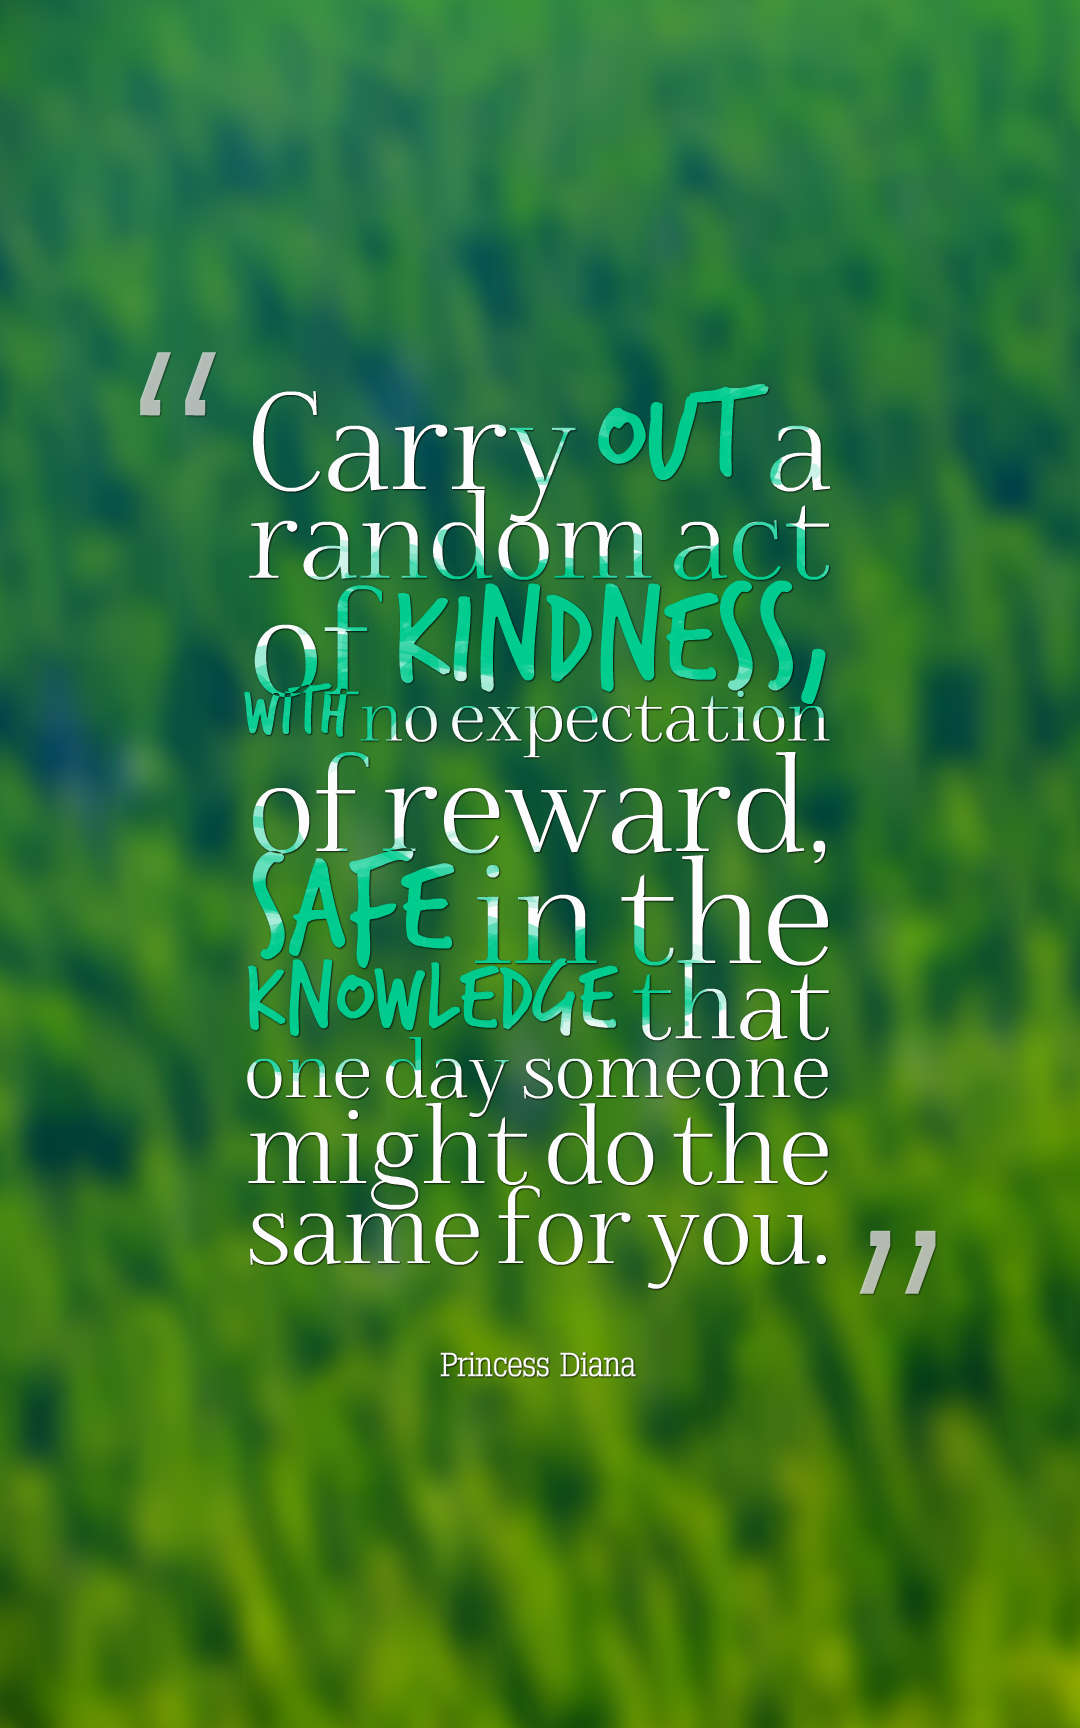 Quotes image of Carry out a random act of kindness, with no expectation of reward, safe in the knowledge that one day someone might do the same for you.